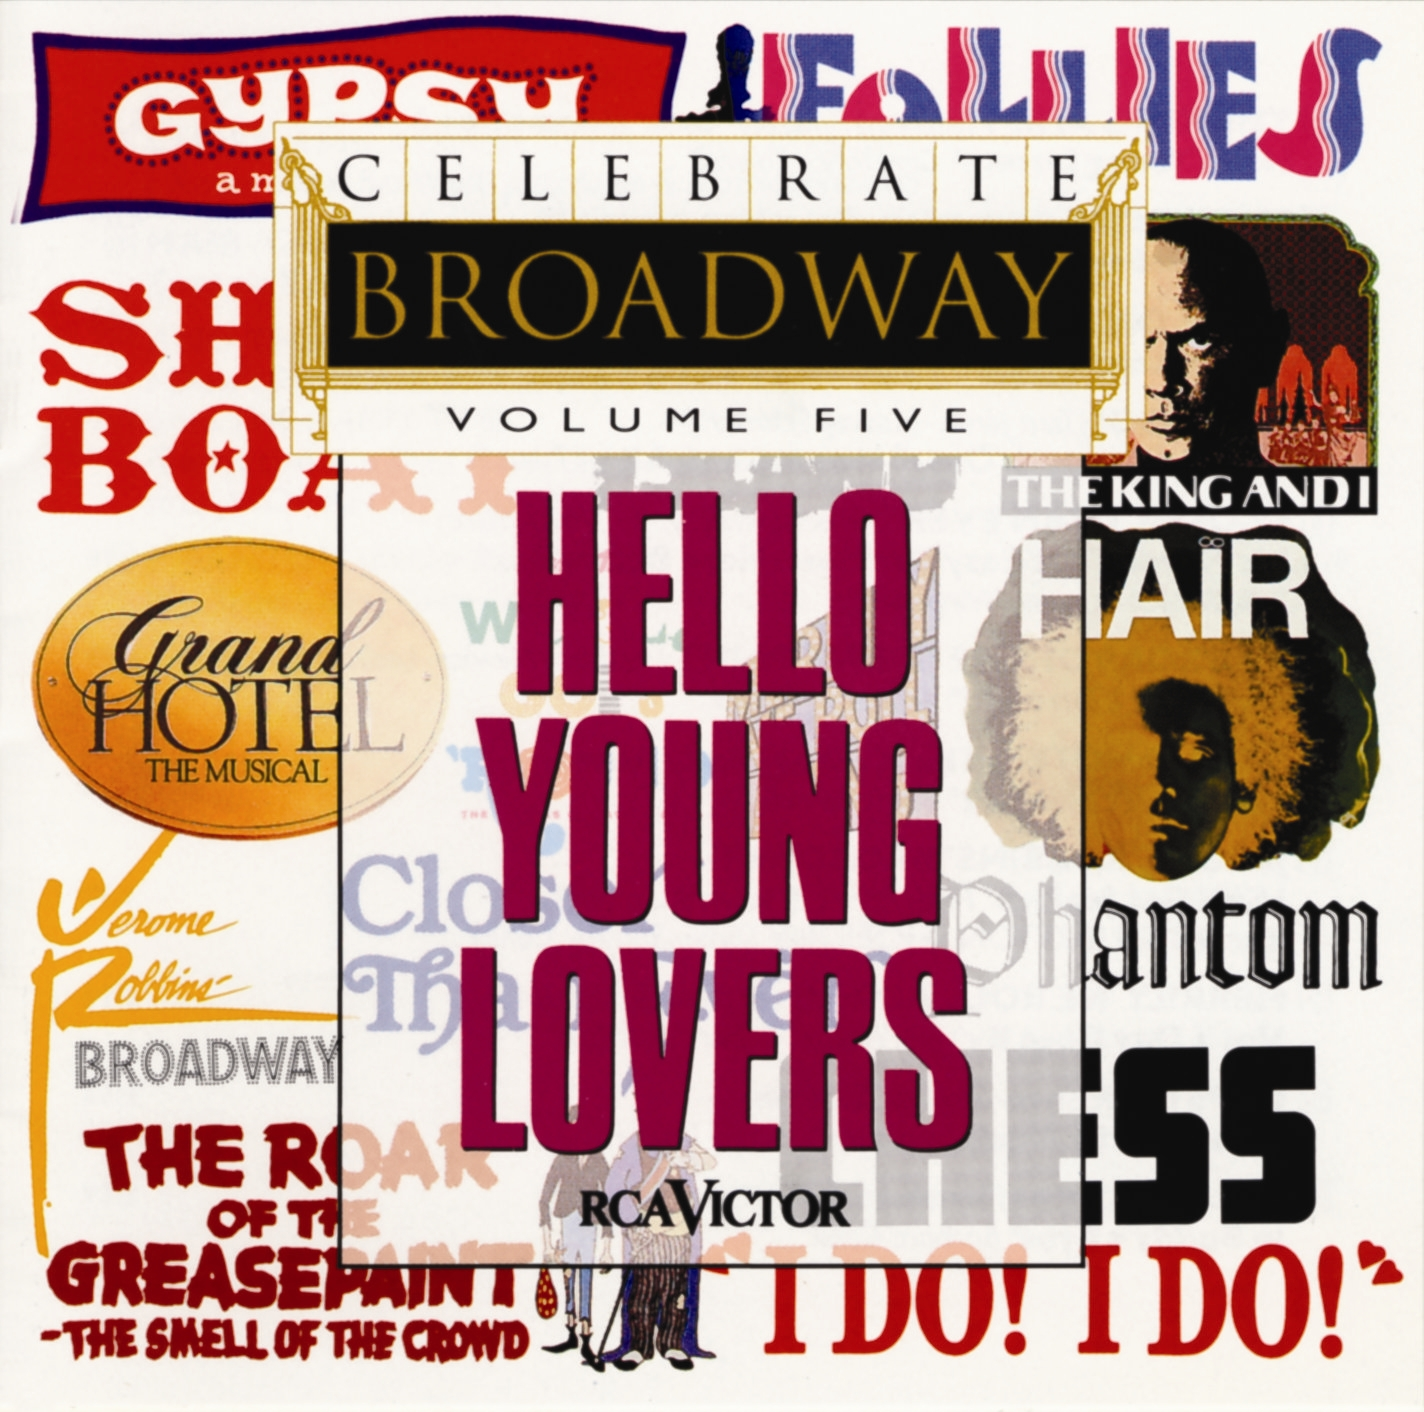 Celebrate Broadway Vol. 5: Hello Young Lovers